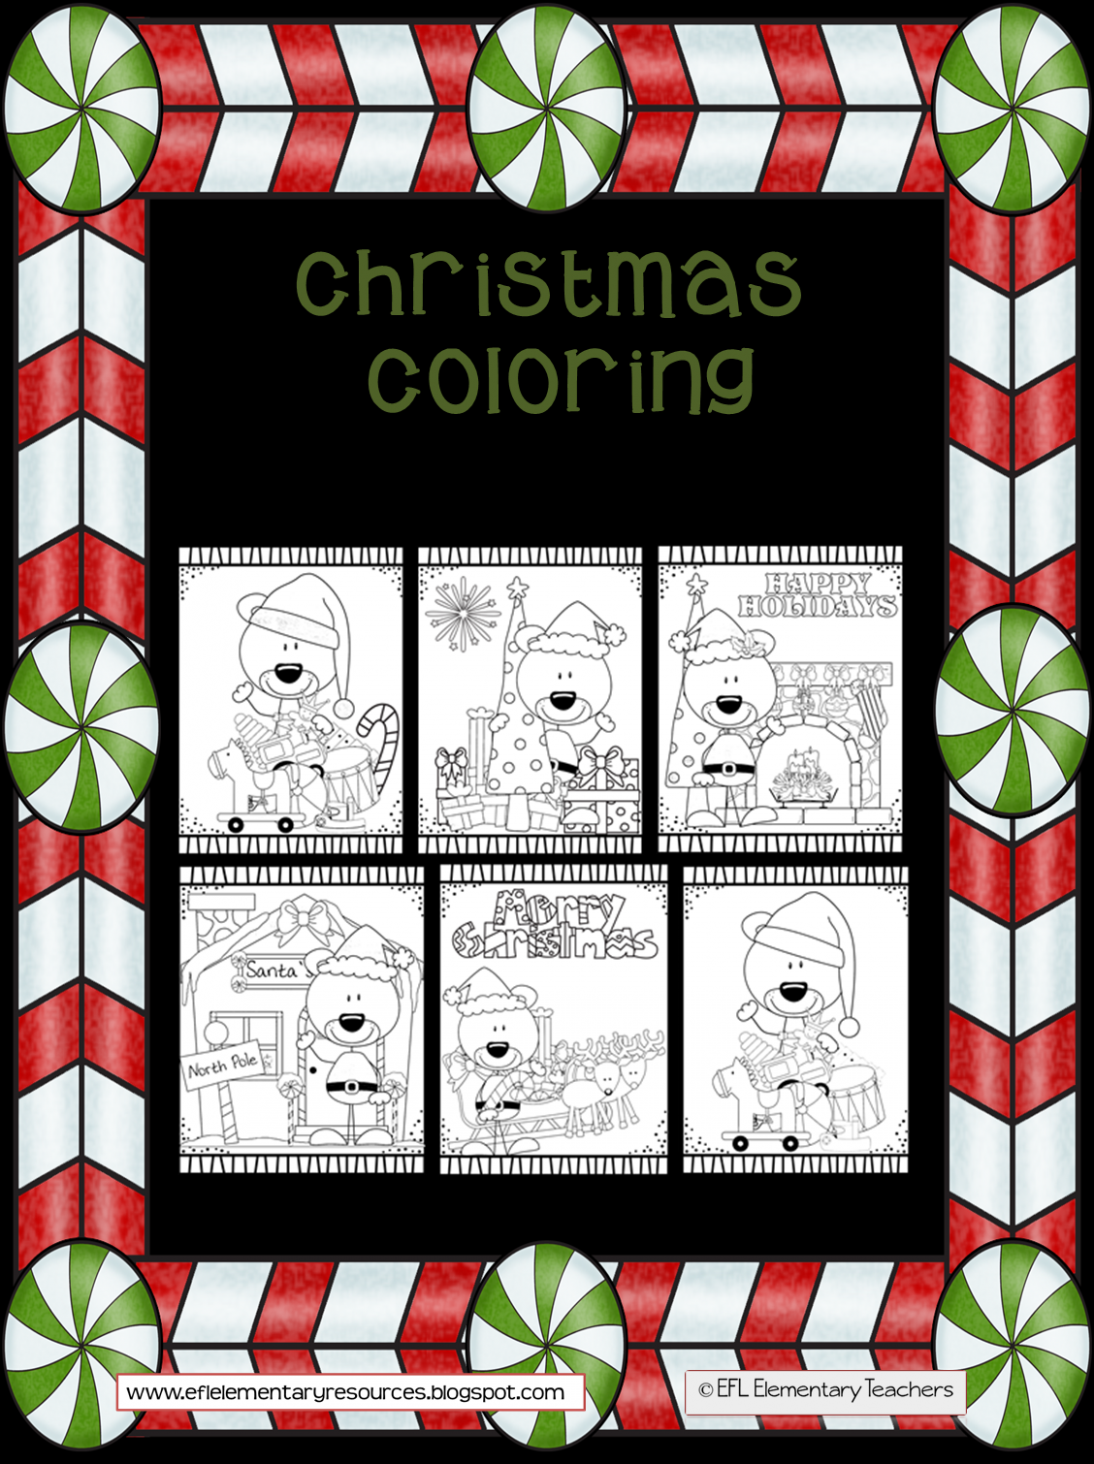 ESL/EFL Preschool Teachers: Christmas Coloring Pages